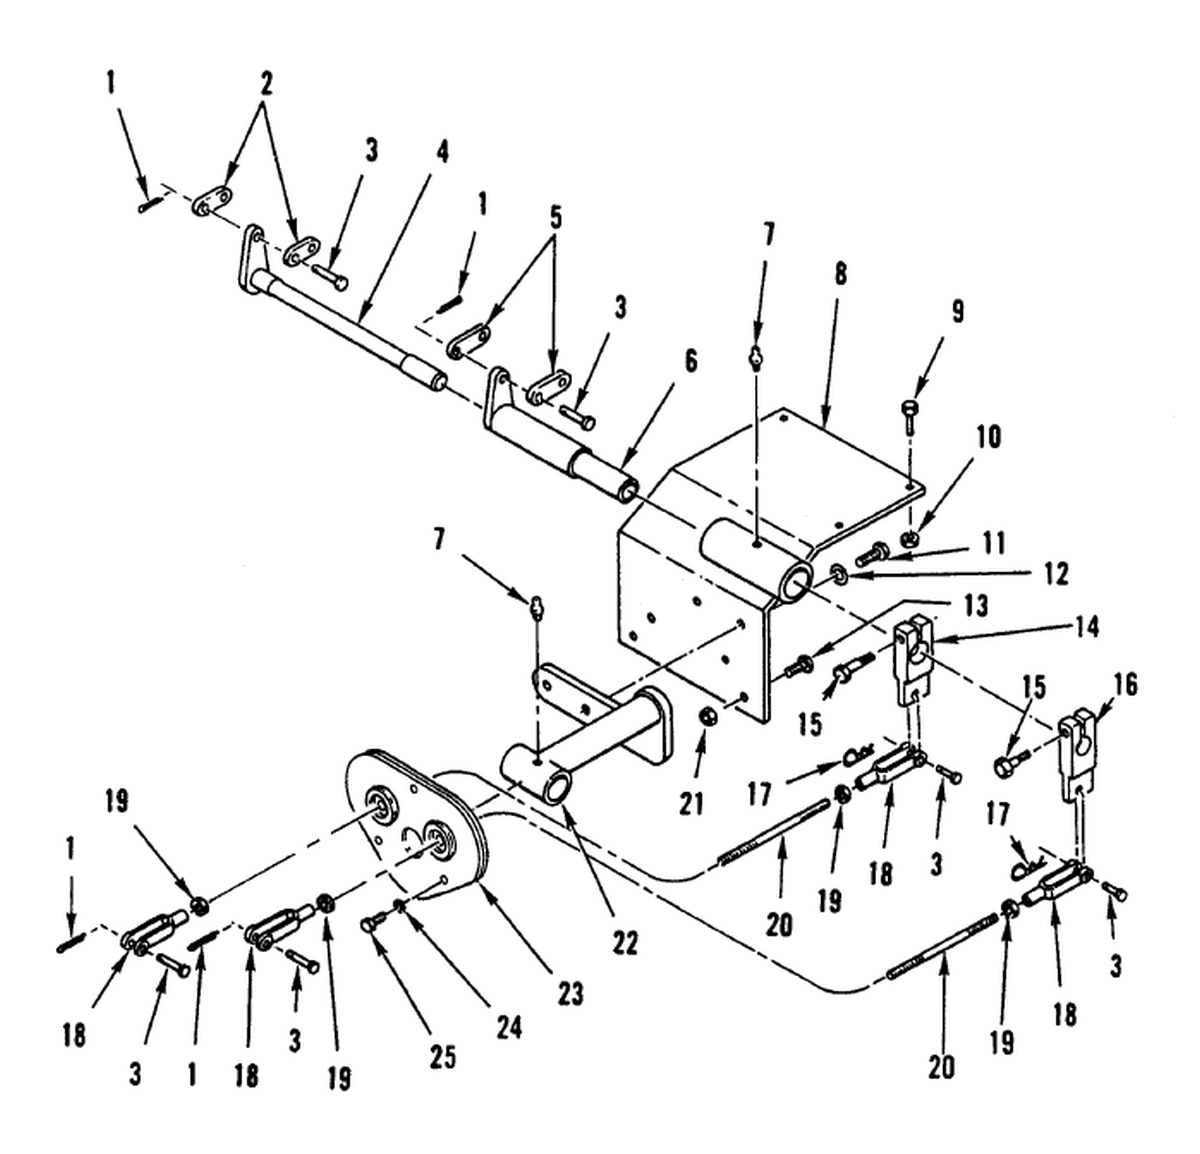 00 2 Figure 254 Hydraulic Control Levers And Linkage